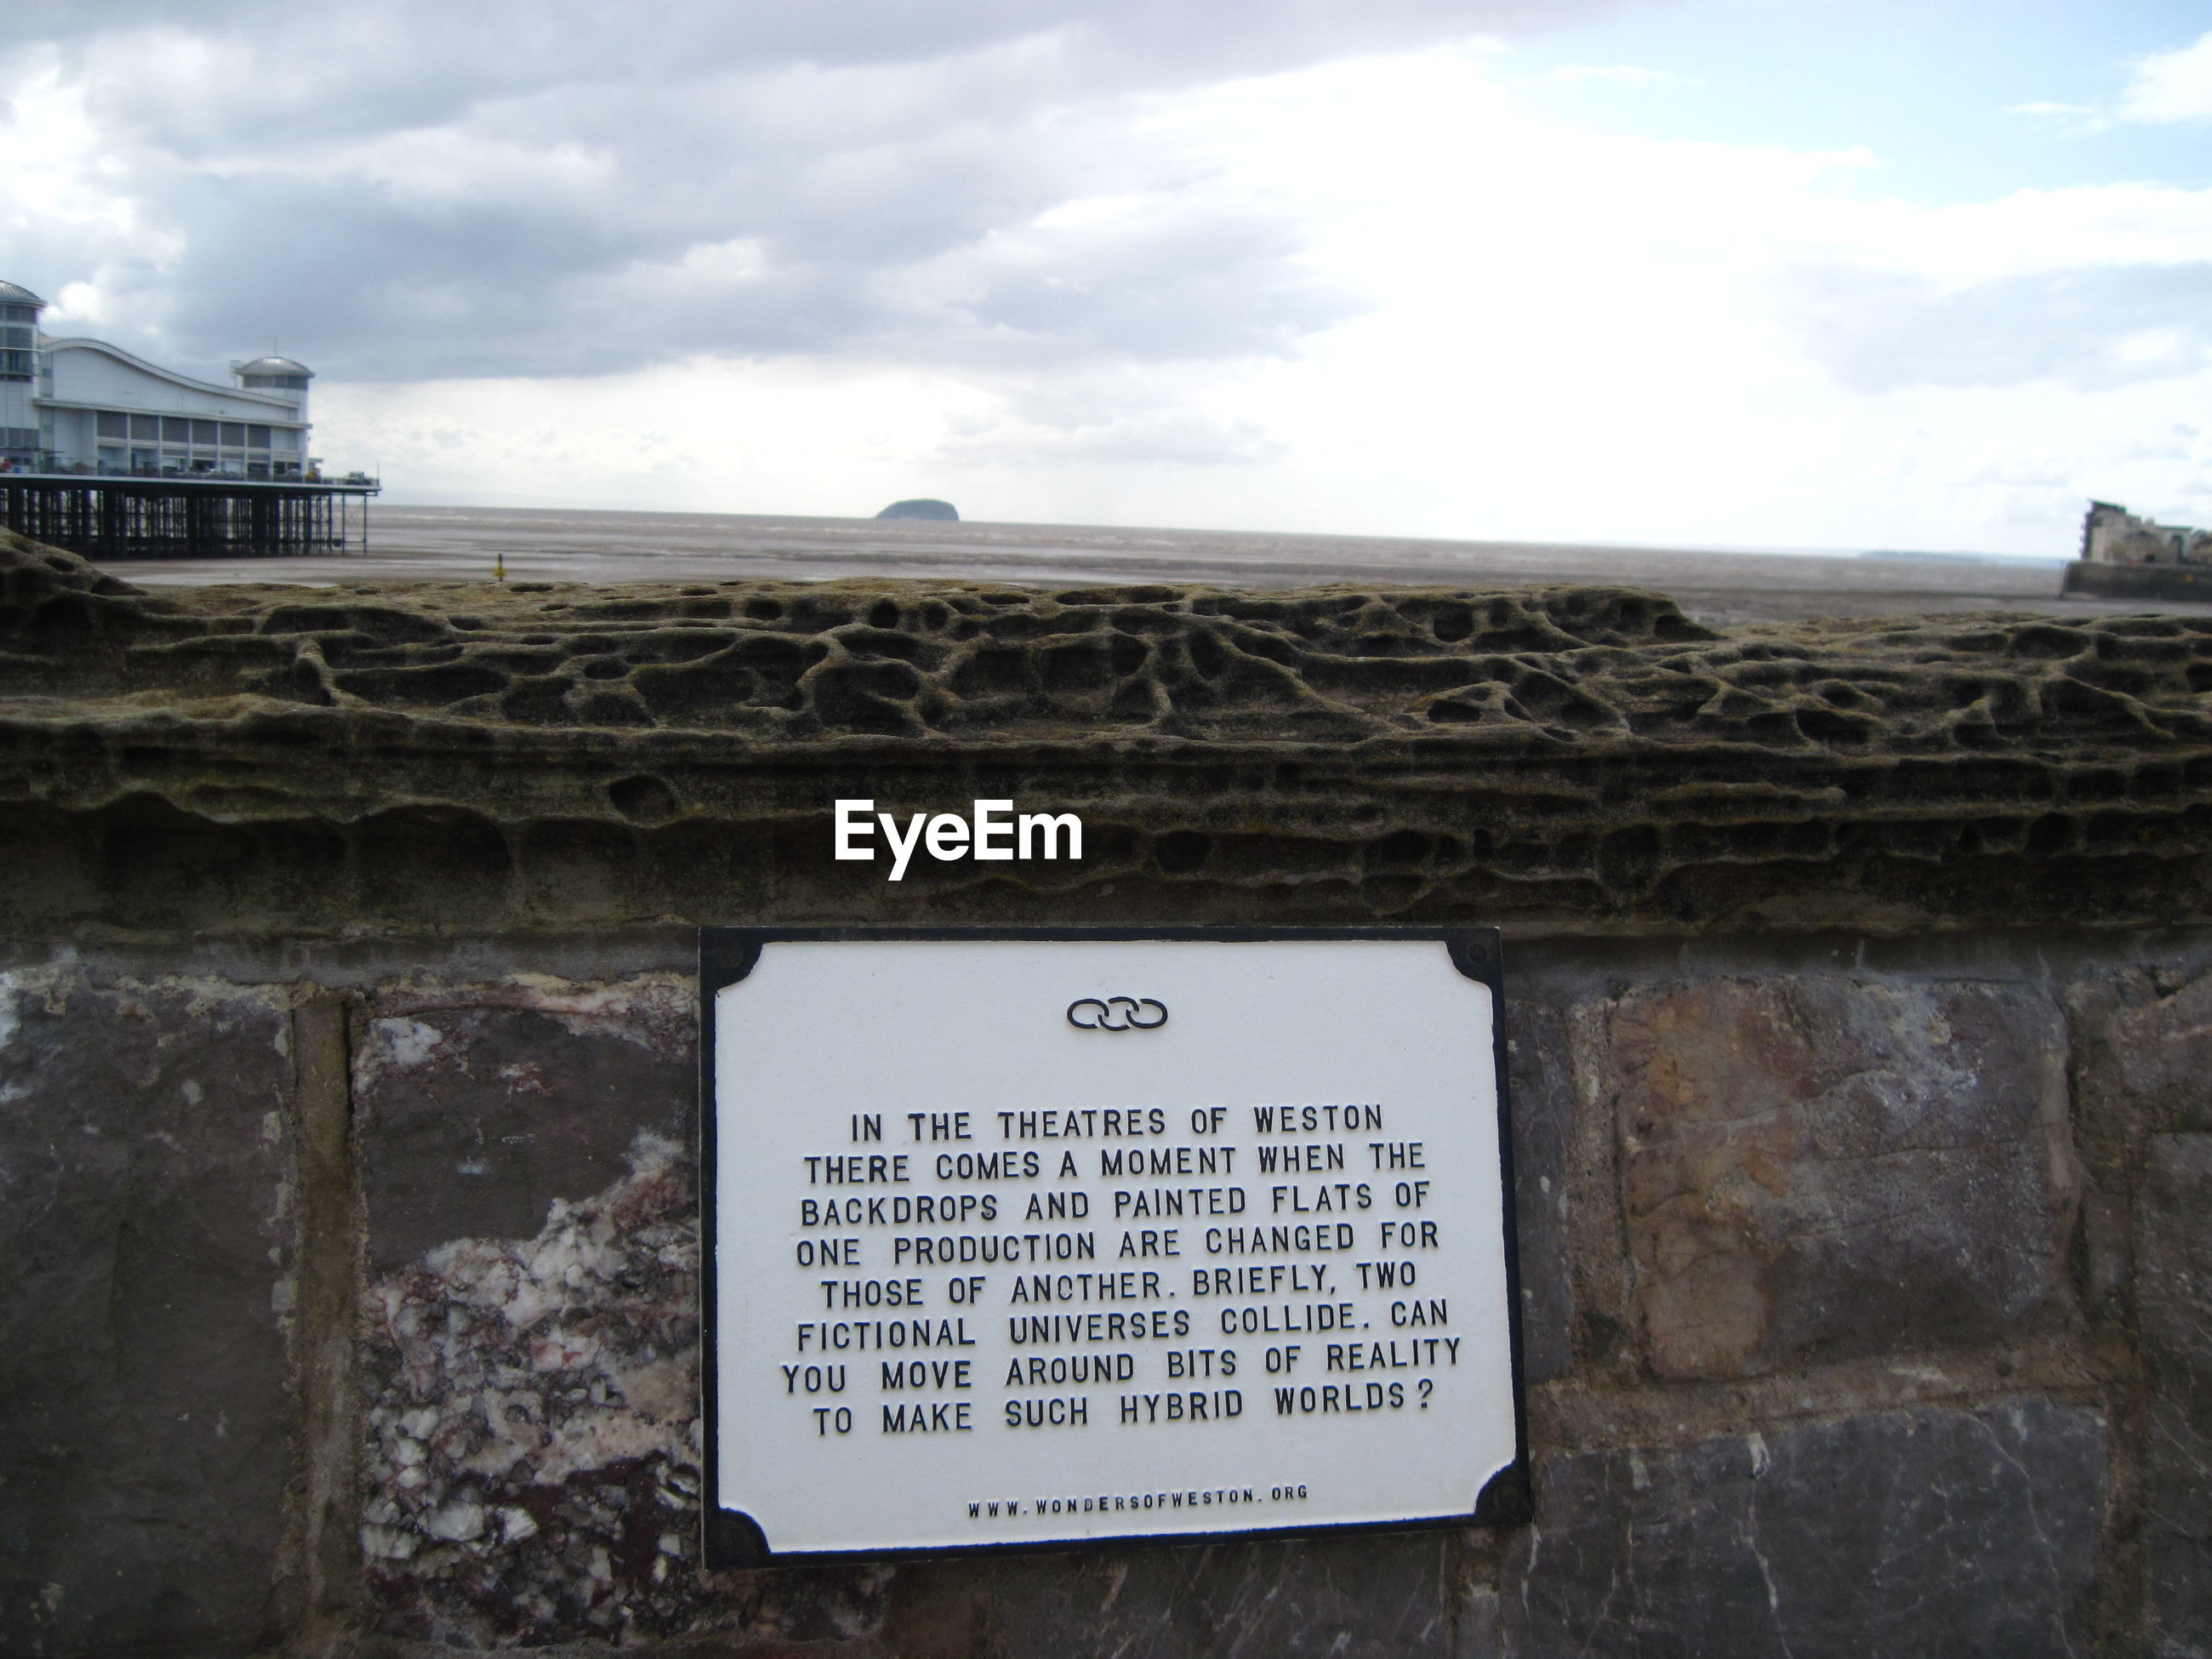 INFORMATION SIGN ON BUILDING AGAINST SKY